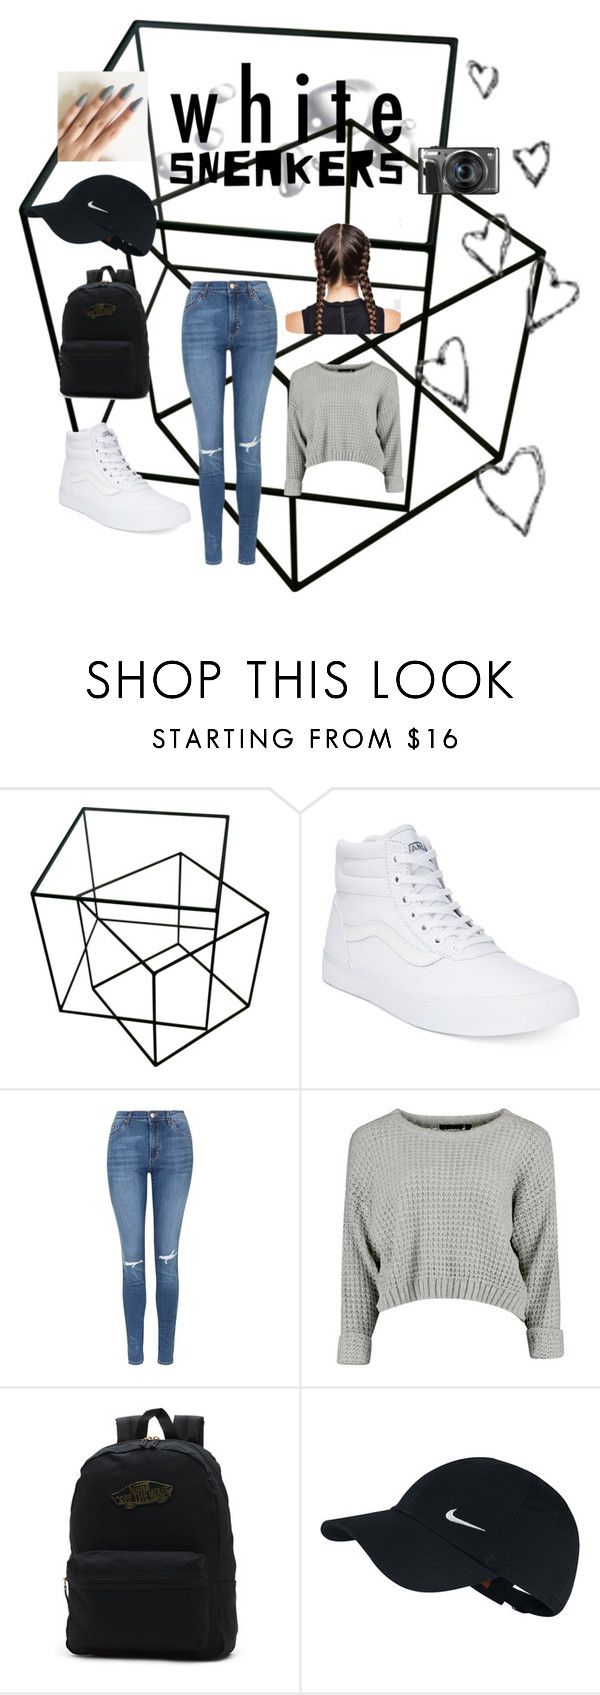 """""""White sneakers"""" by alliemcc ❤ liked on Polyvore featuring Vans, Topshop, NIKE and Brinley Co"""